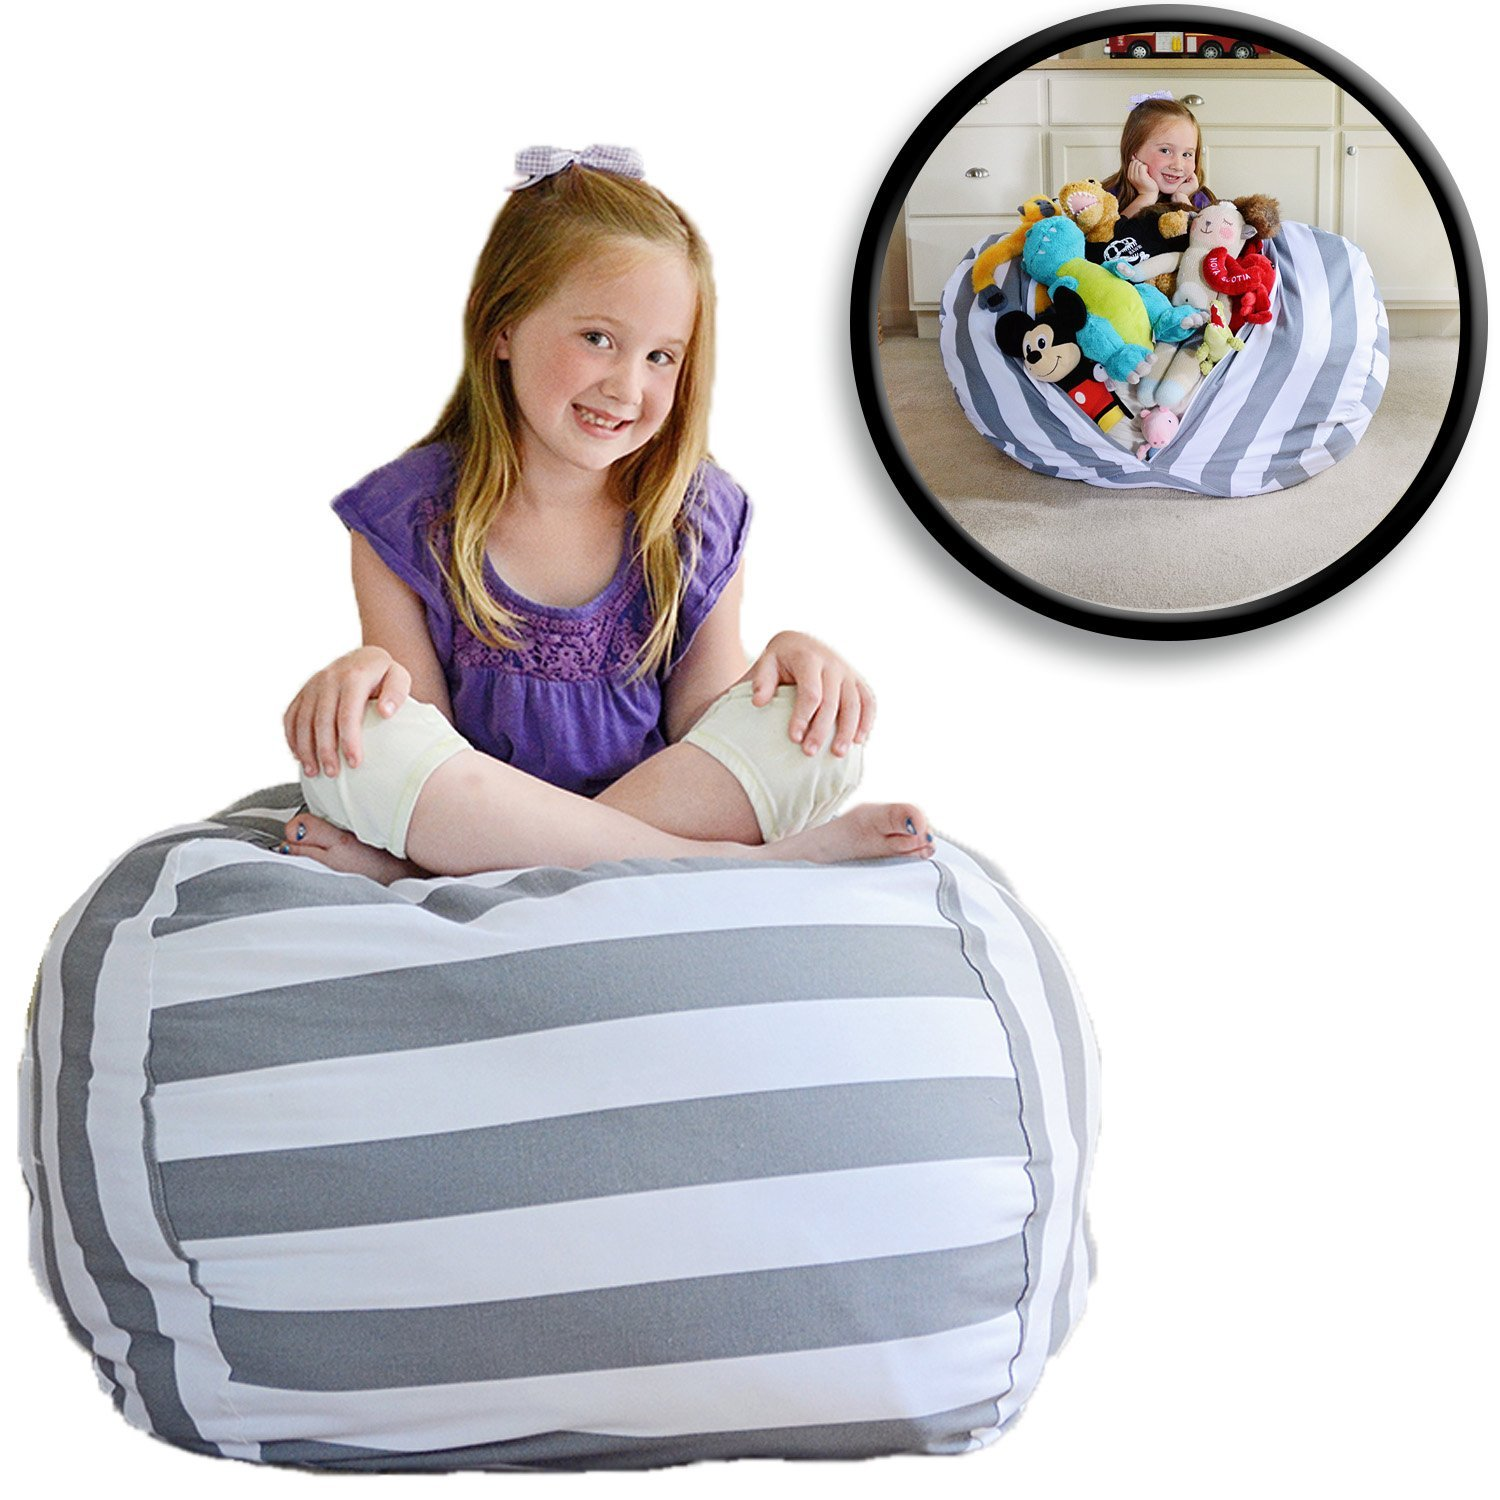 "EXTRA LARGE - Stuffed Animal Storage Bean Bag Chair - Premium Cotton Canvas - Clean up the Room and Put Those Critters to Work for You! - By Creative QT (38"", Grey/White Striped)"